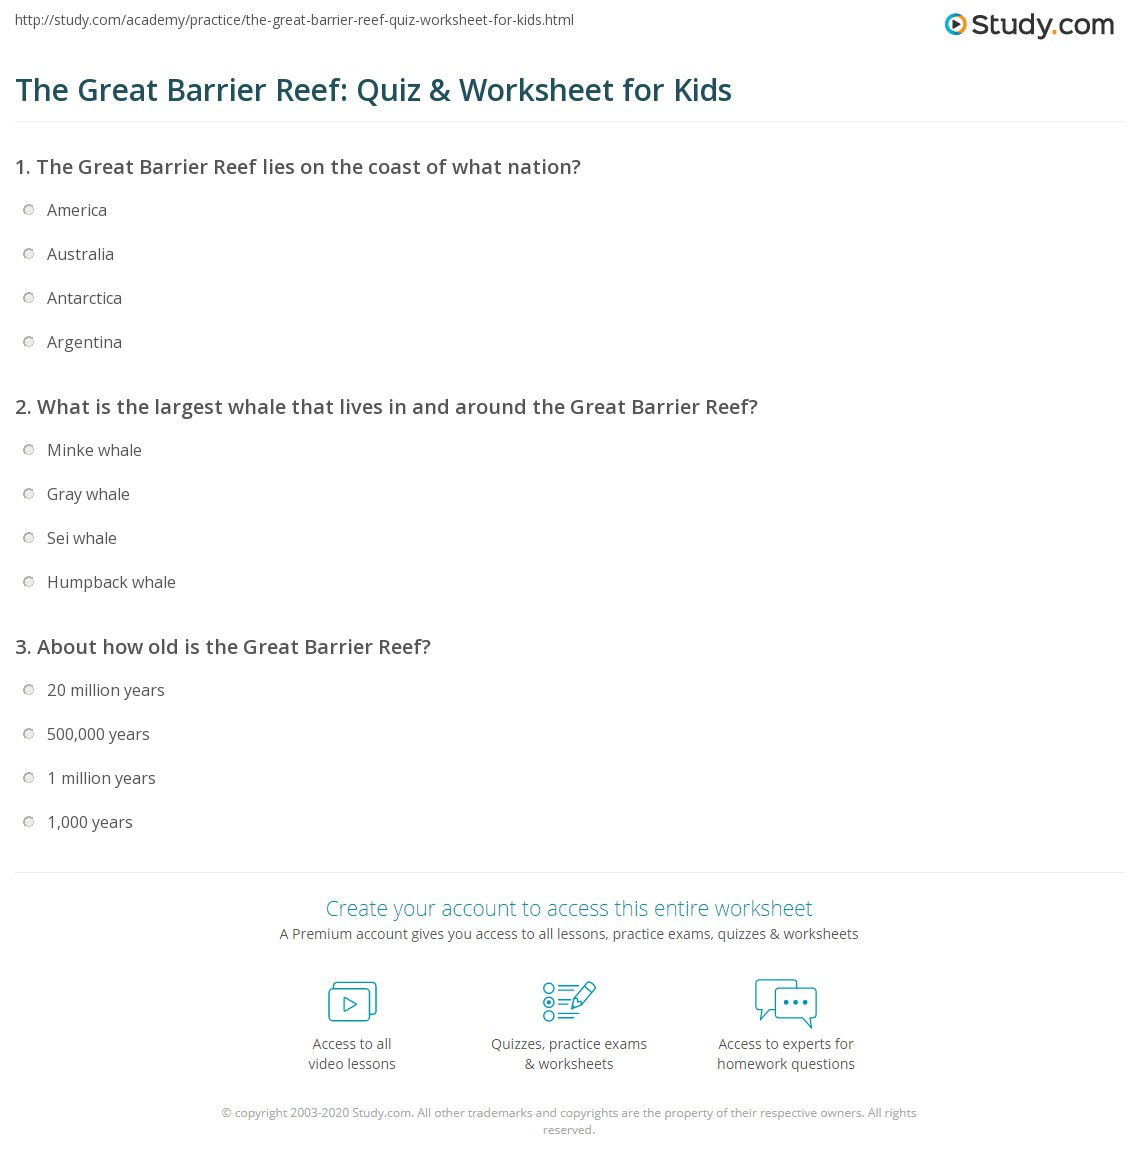 The Great Barrier Reef: Quiz & Worksheet For Kids